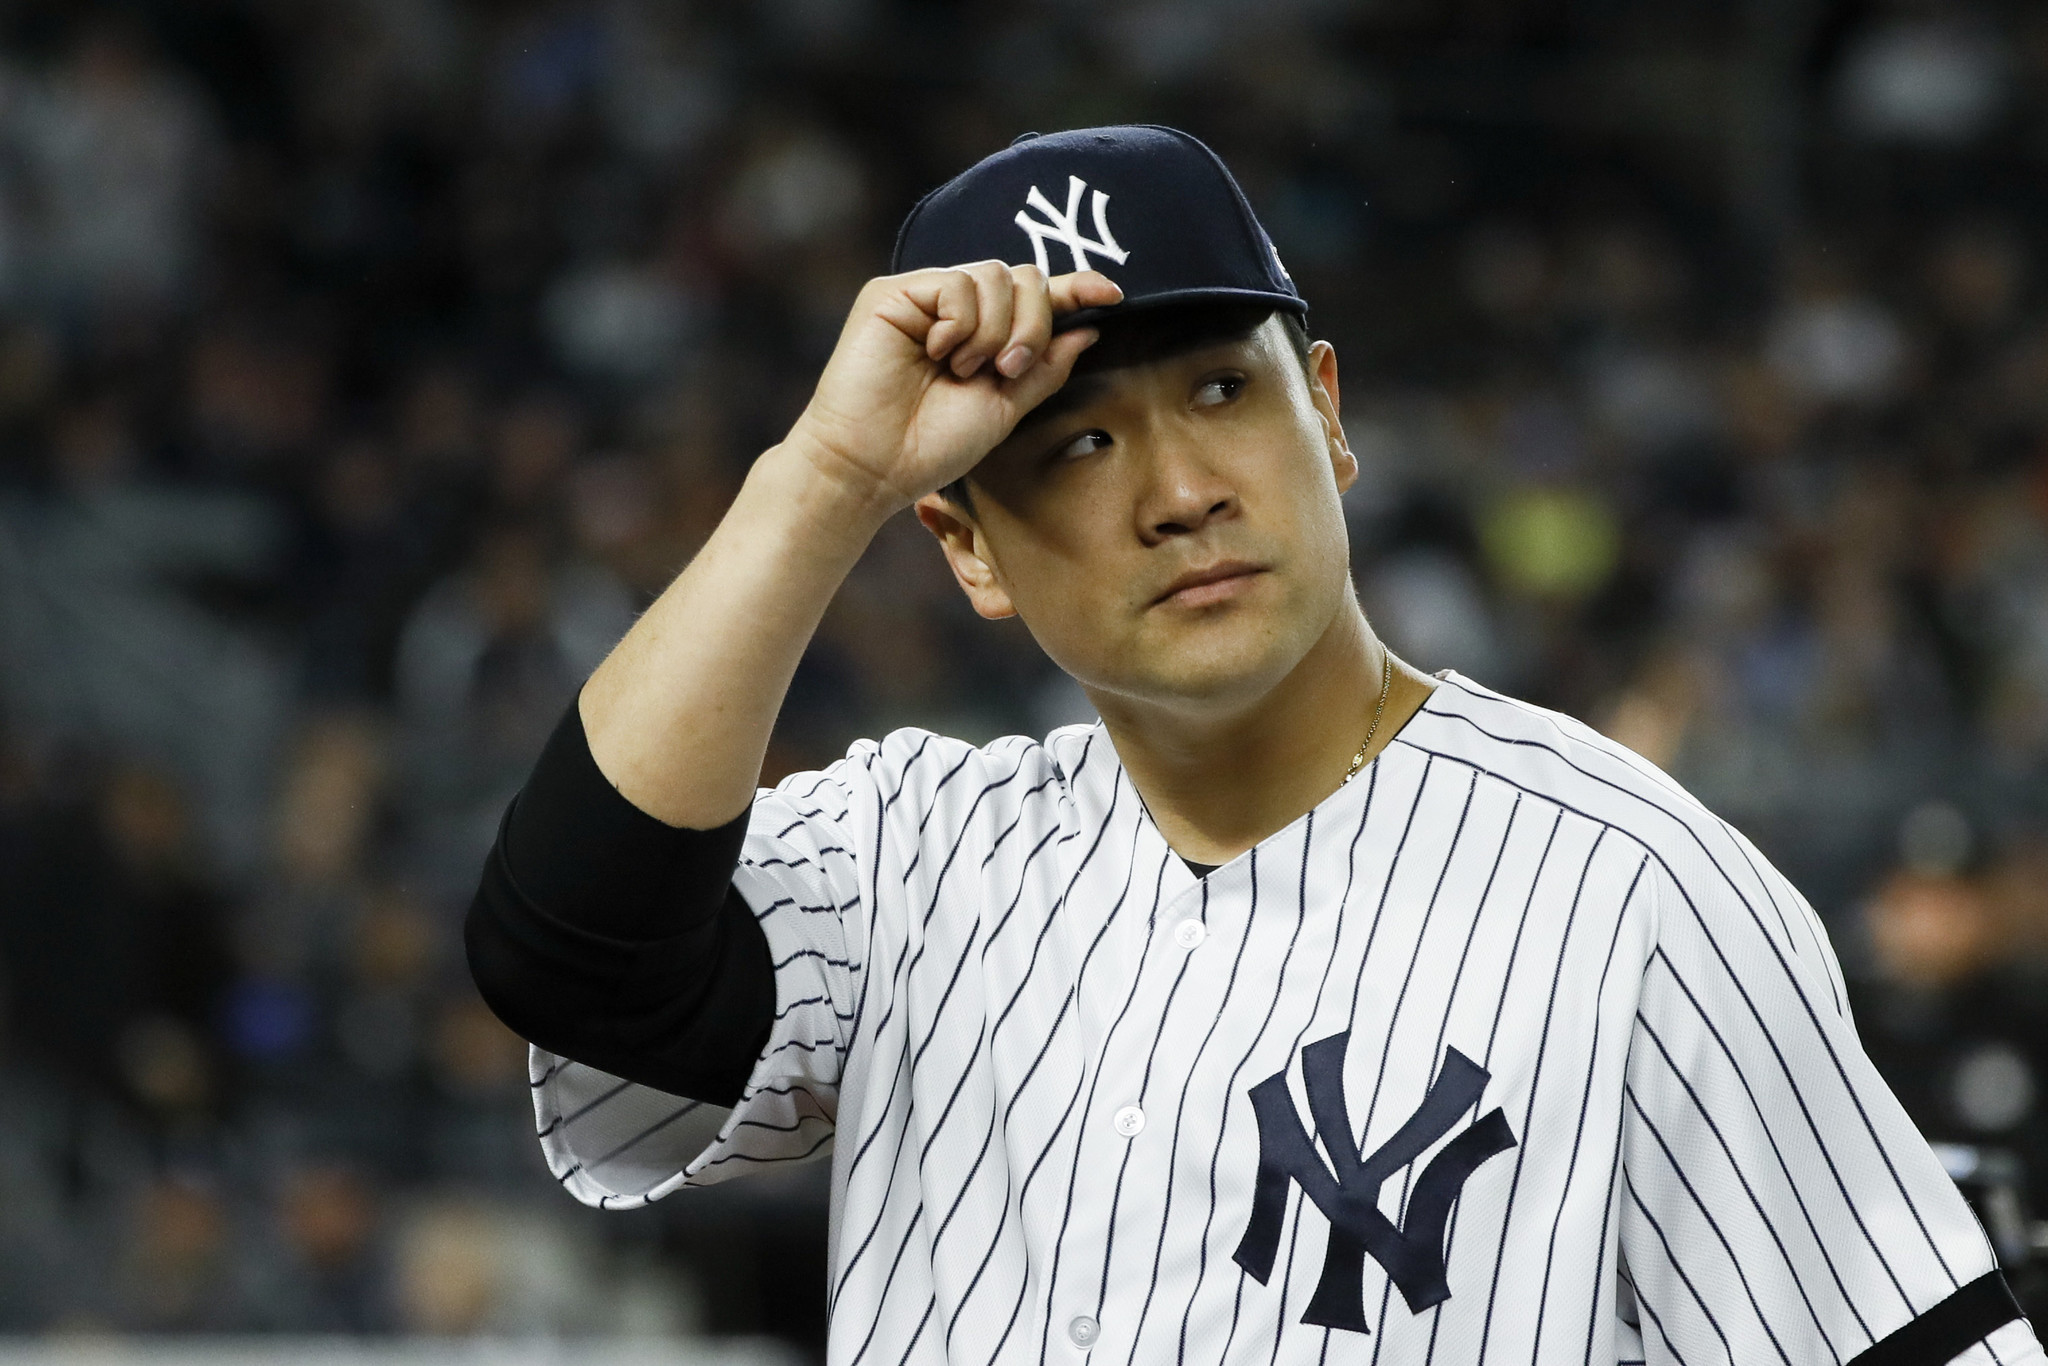 Yankees pitcher Masahiro Tanaka returns to Japan with his family over coronavirus concerns in the U.S.